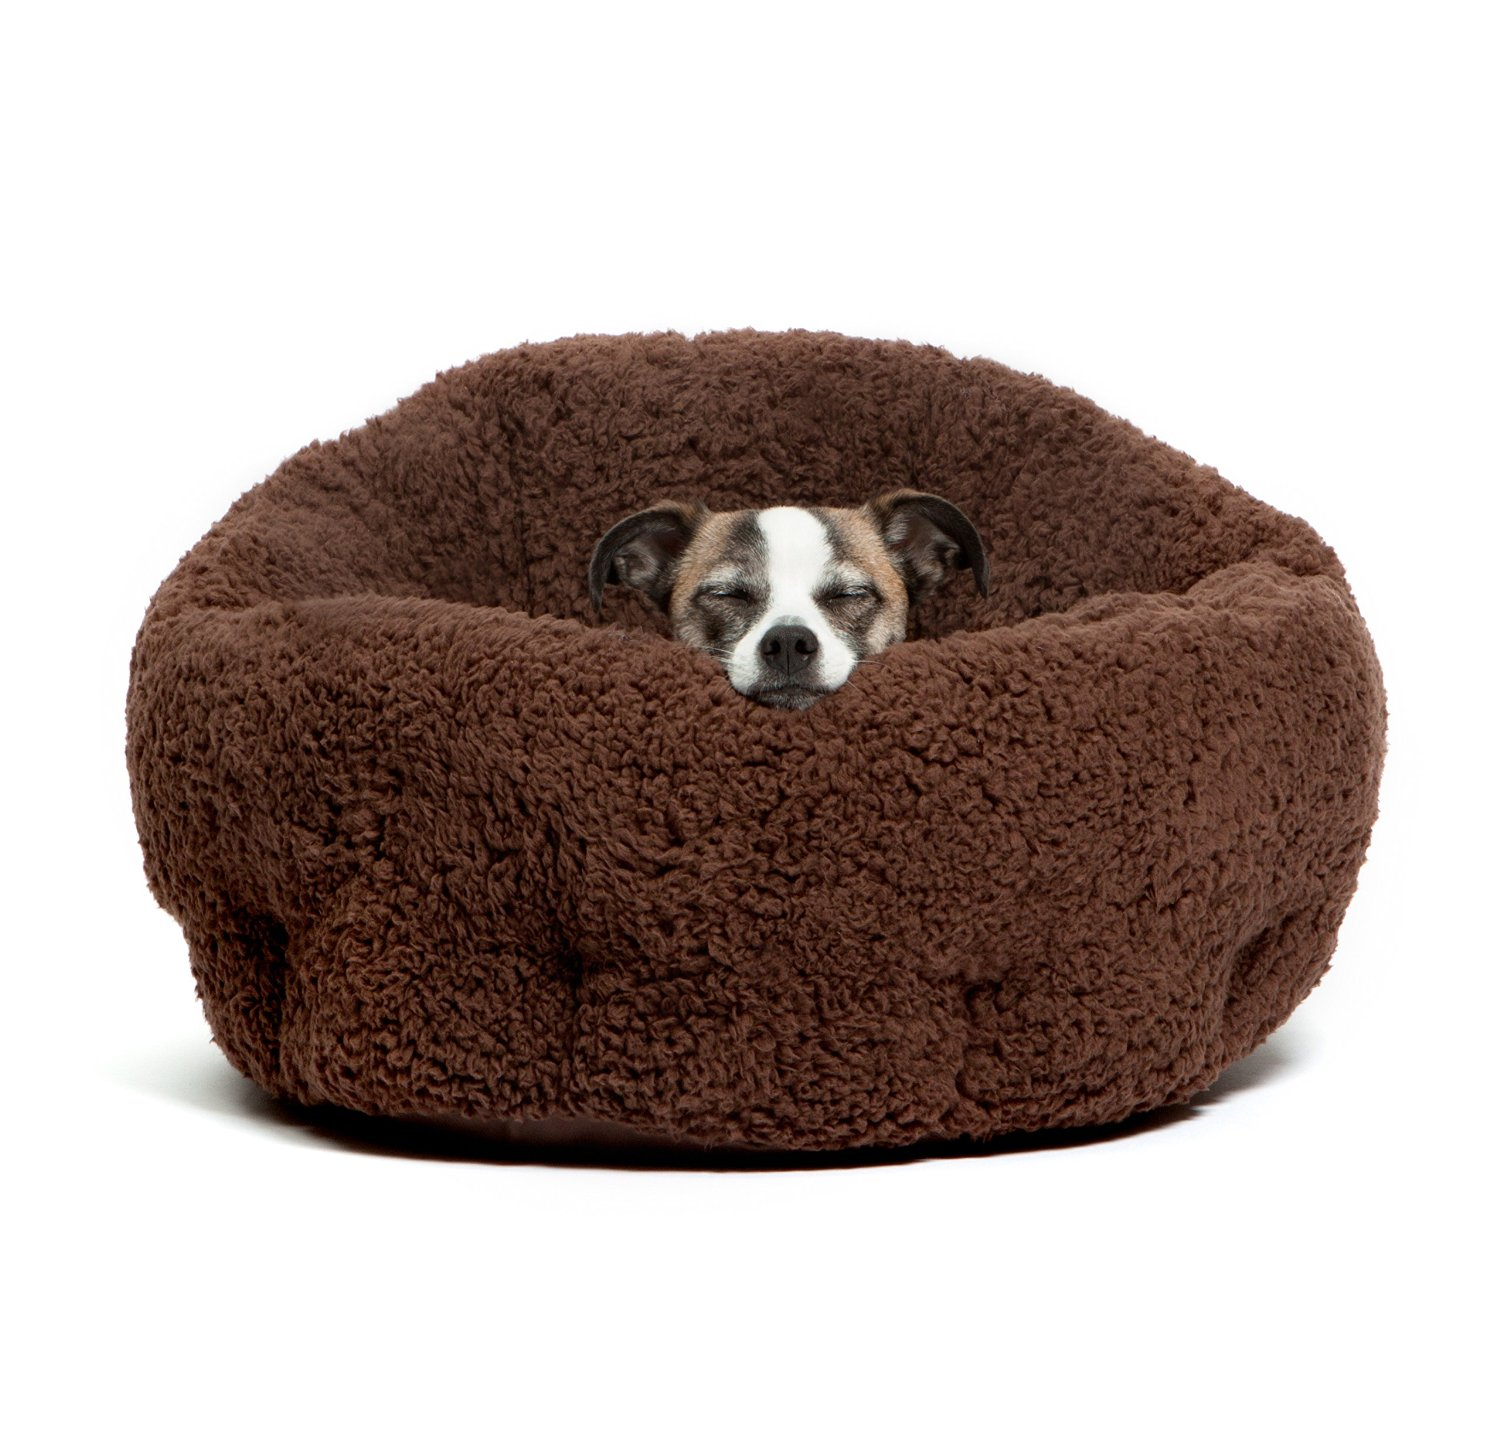 8.-Best-Friends-by-Sheri-OrthoComfort-Deep-Dish-Cuddler-Multiple-Sizes-–-Self-Warming-Cat-and-Dog-Bed-Cushion-for-Joint-Relief-and-Improved-Sleep-–-Machine-Washable-Waterproof-Bottom 10 Best Dog Beds for Small Dogs